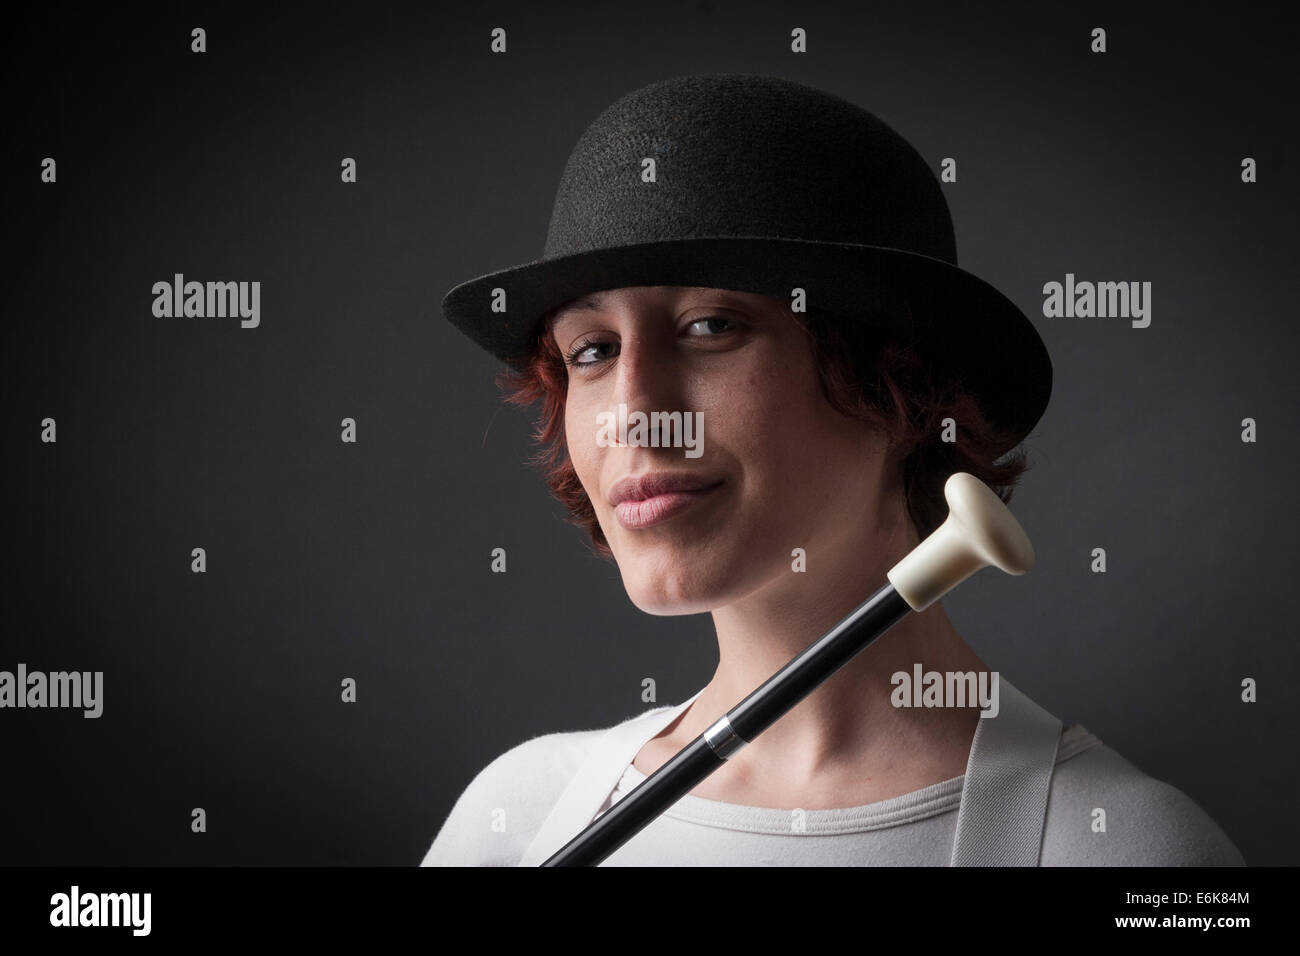 woman with bowler hat and cane Stock Photo  72952900 - Alamy 67ef74f5ab17